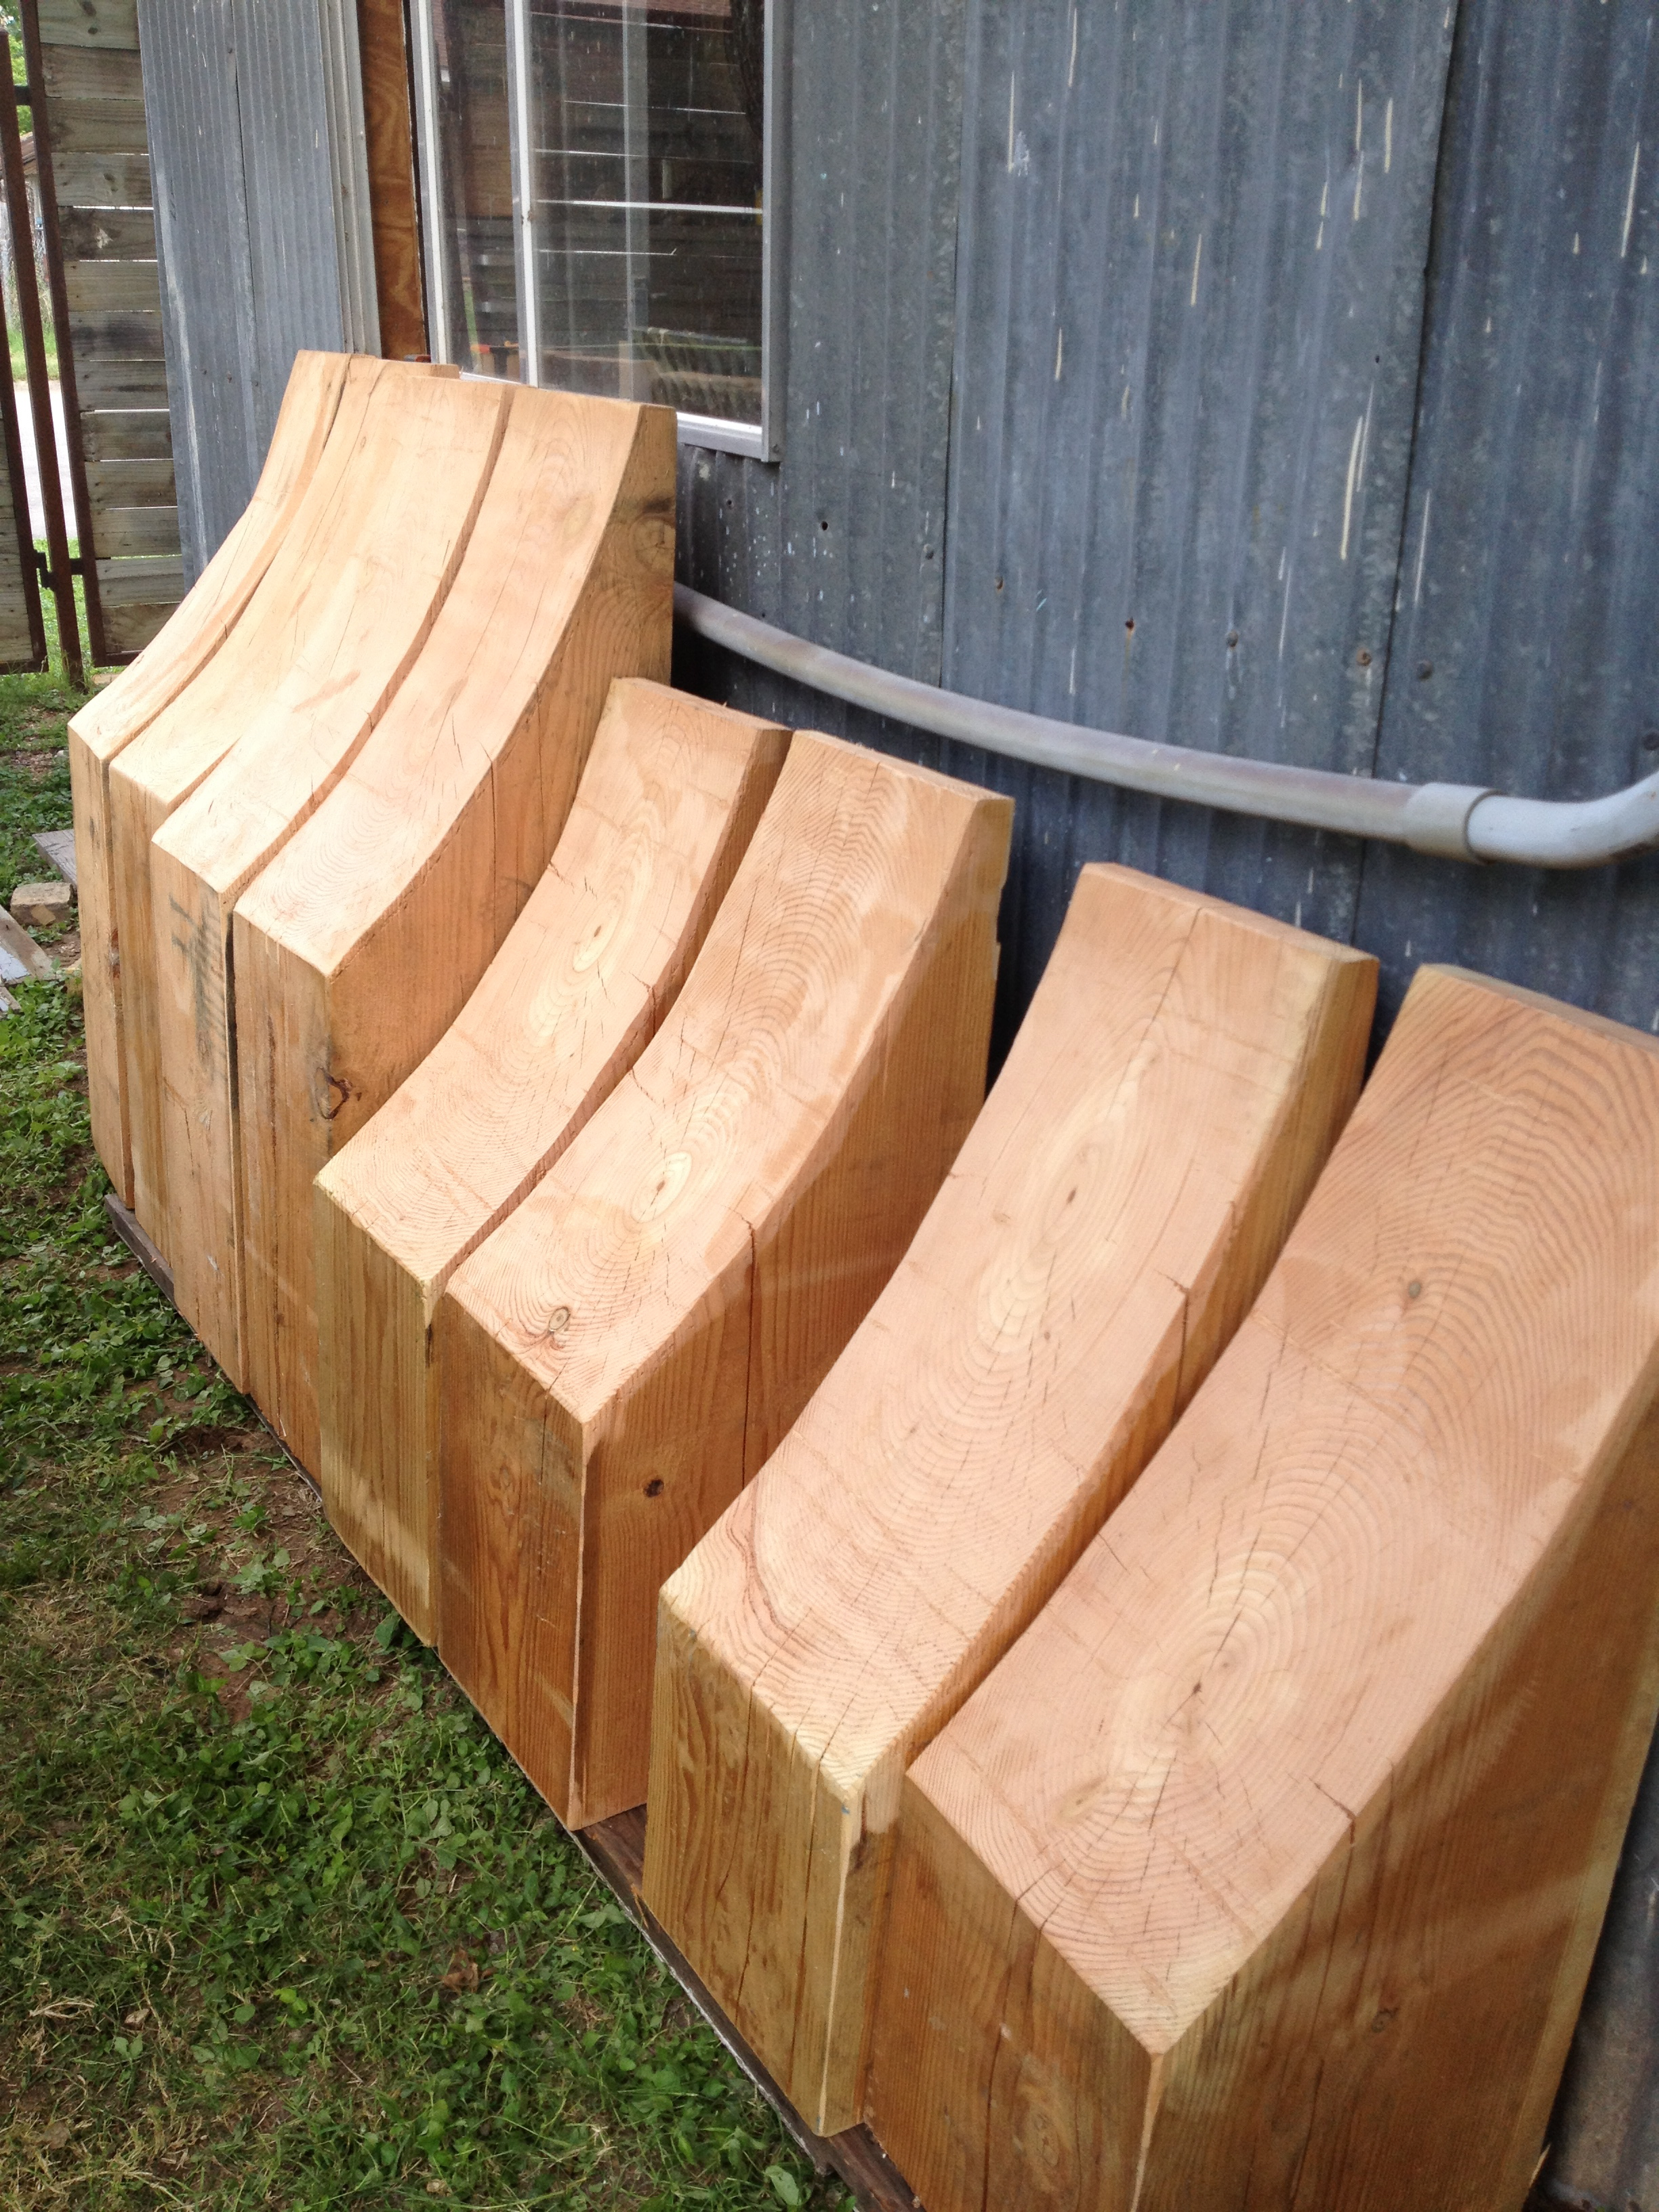 Cut wood timbers with 4 pairs of radii